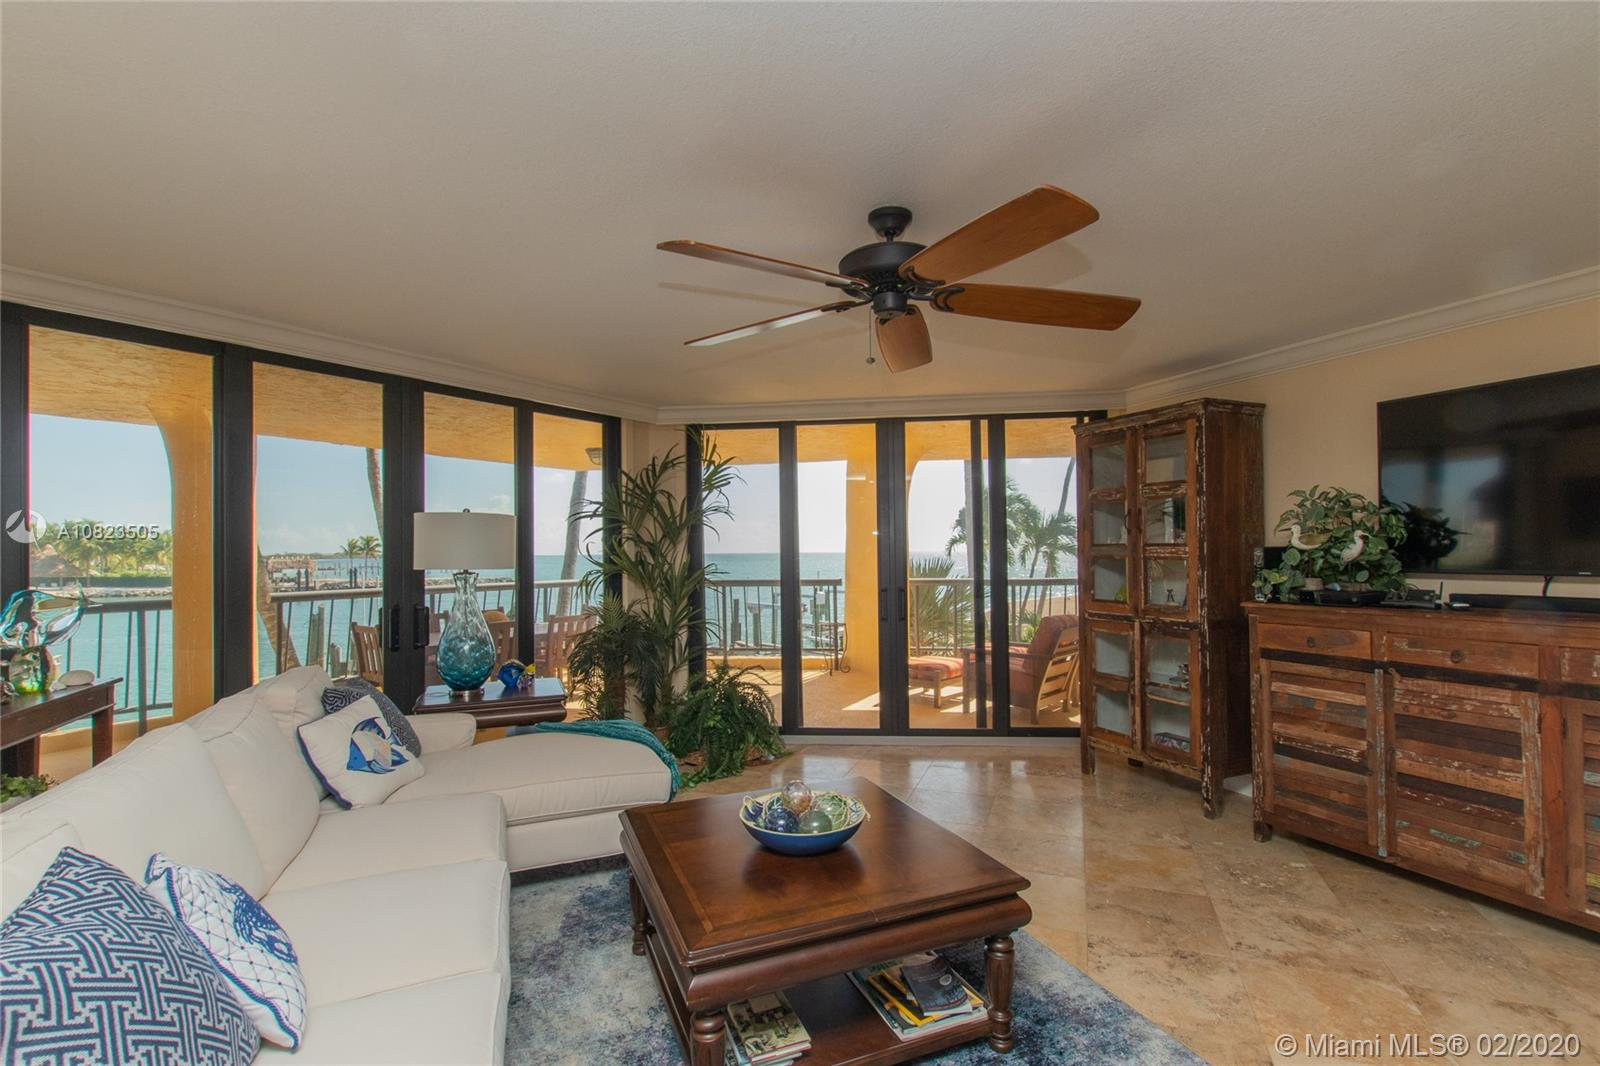 101 E Ocean Dr #C202, OTHER FL Key, FL 33051 - OTHER FL Key, FL real estate listing